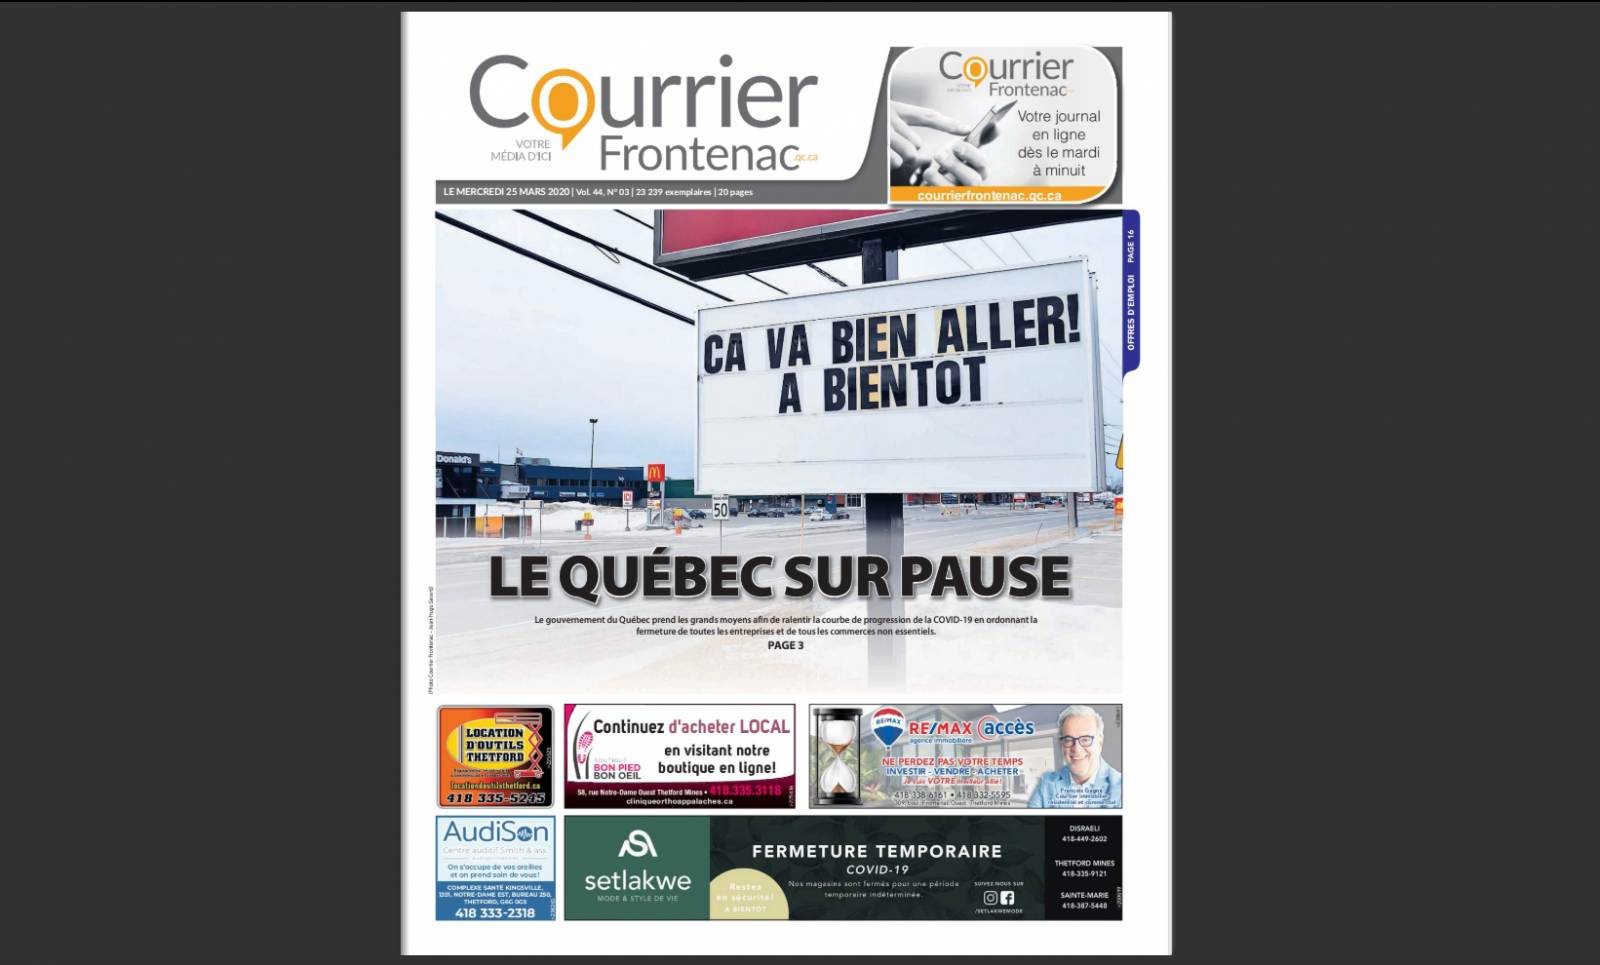 Le Courrier Frontenac maintient sa version papier